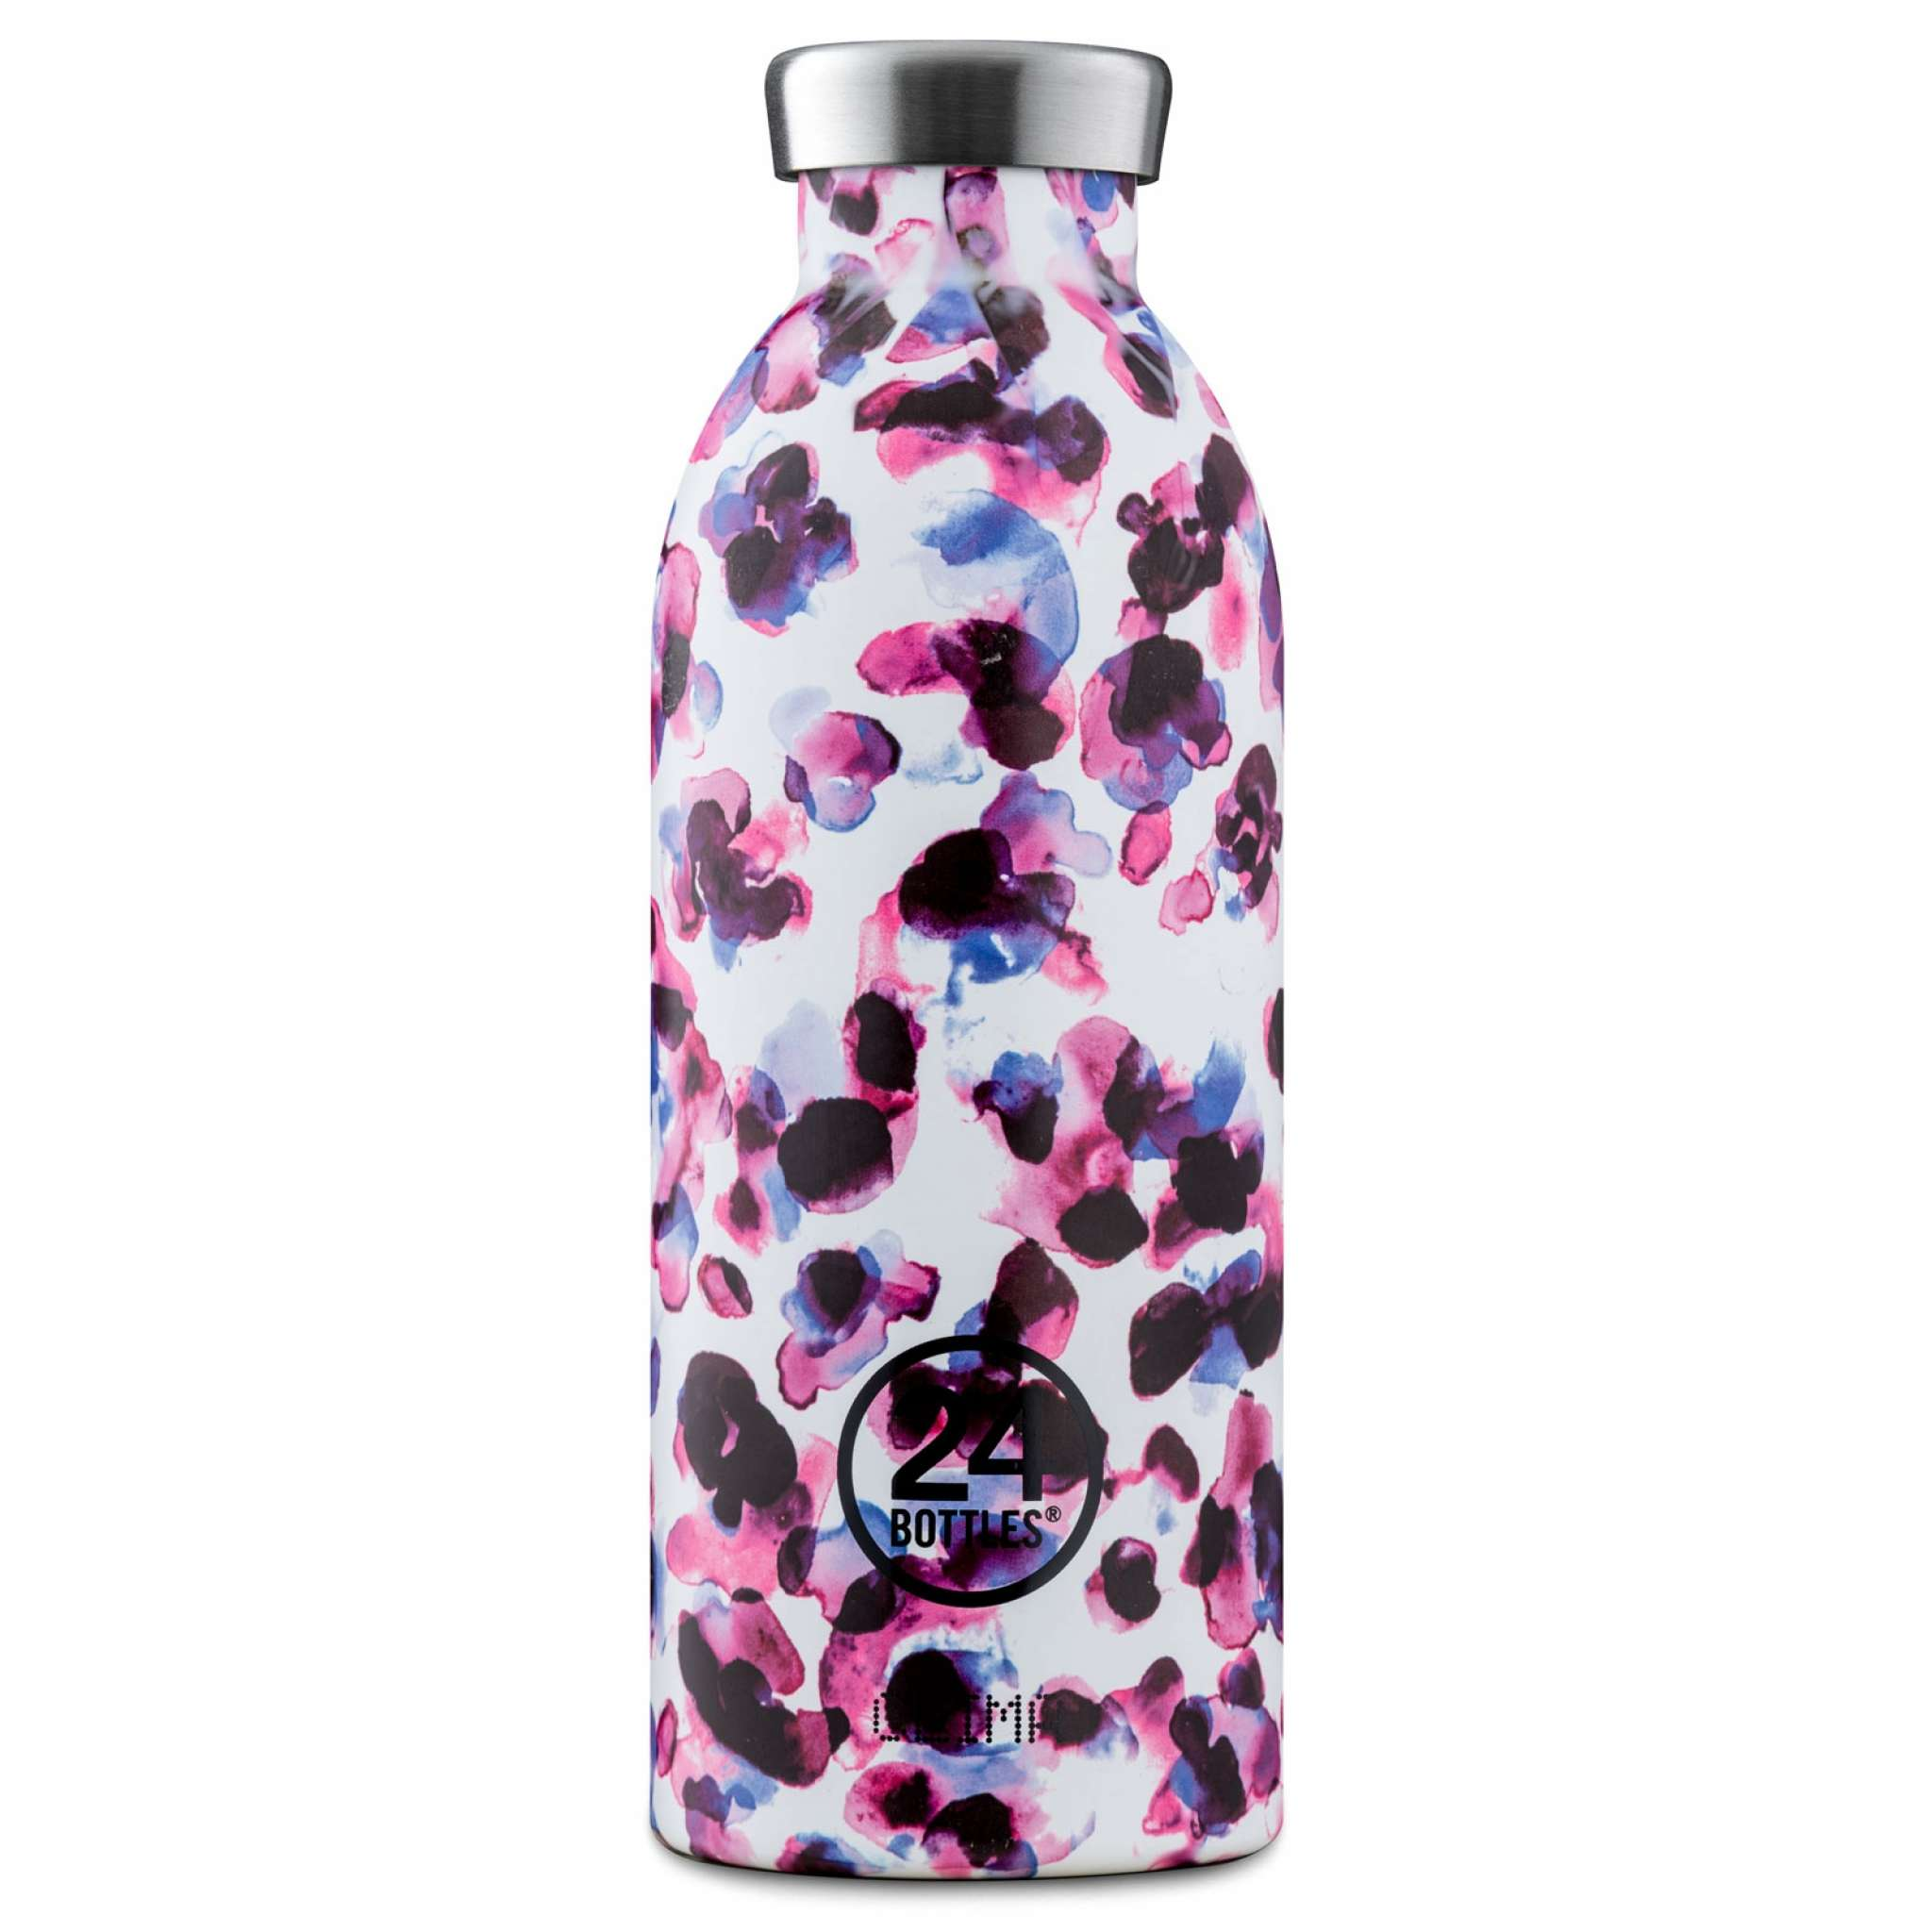 Clima 24Bottles 500 ml Cheetah